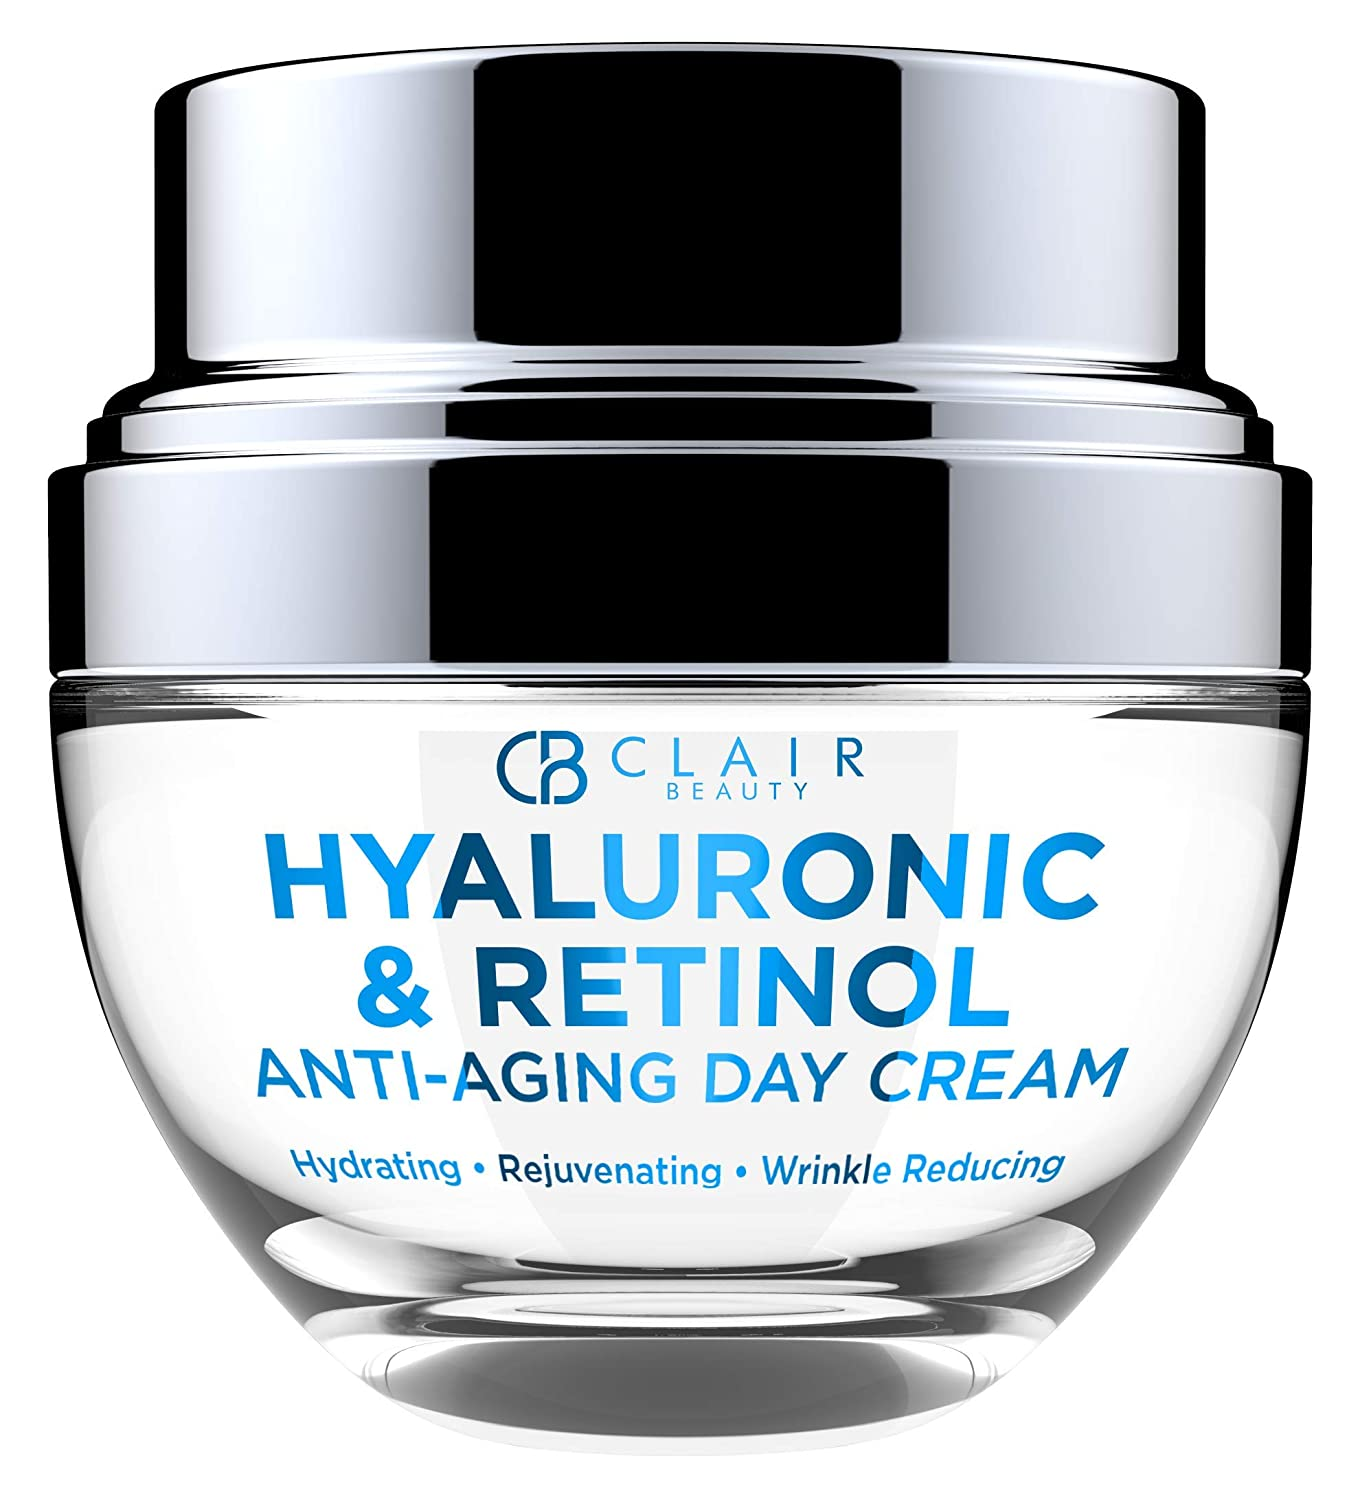 Hyaluronic & Retinol Anti Aging Moisturizing Day Cream - Hydrates & Rejuvenates Skin | Restores Skin Tone | Reduces Appearance Of Wrinkles and Fine Lines - 50mL